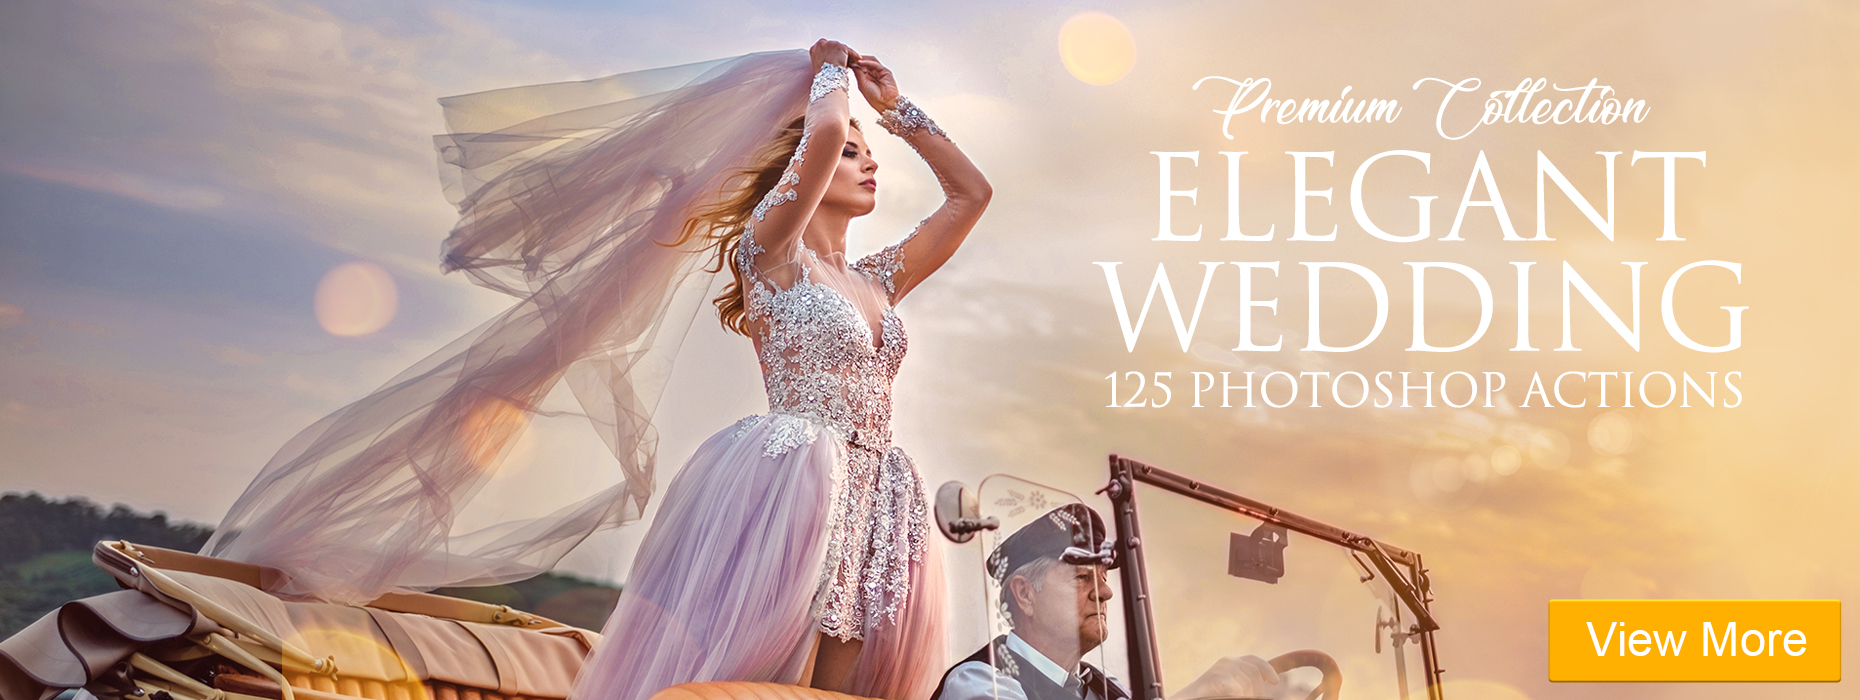 best free photoshop actions elegant wedding actions banner girl in wedding dress in a car